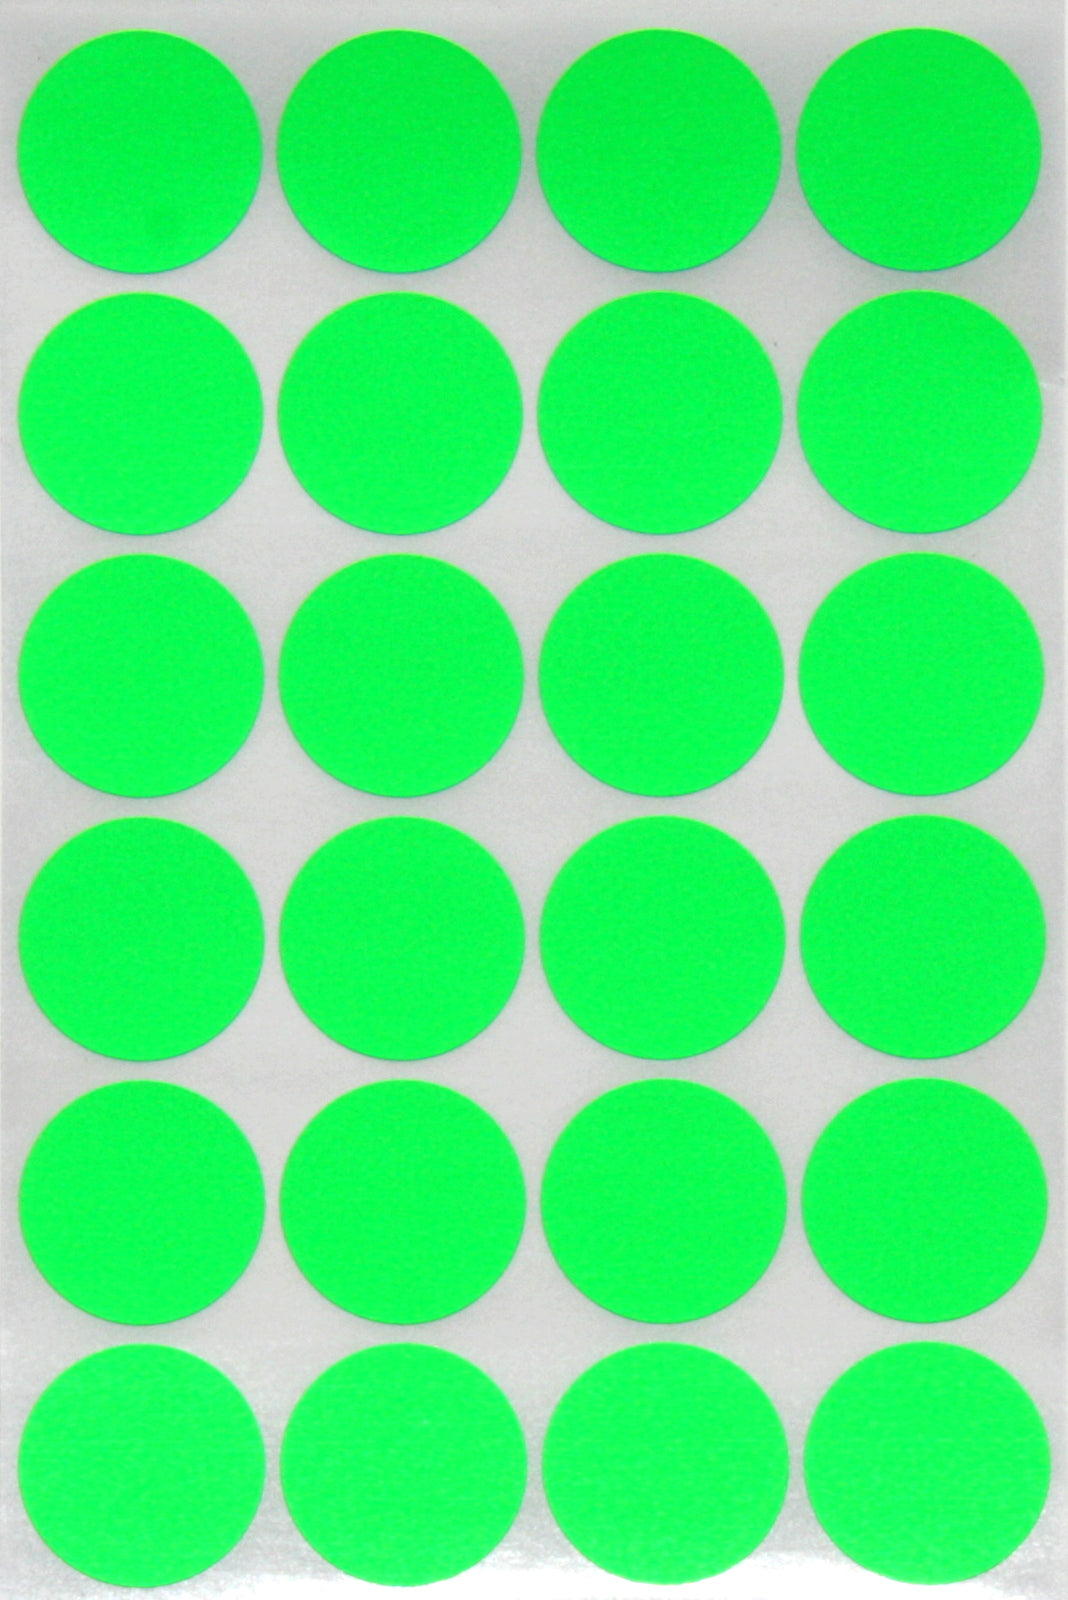 Round Stickers Colored Labels Sticker Dots Pink 25mm 360 Pack by Royal Green